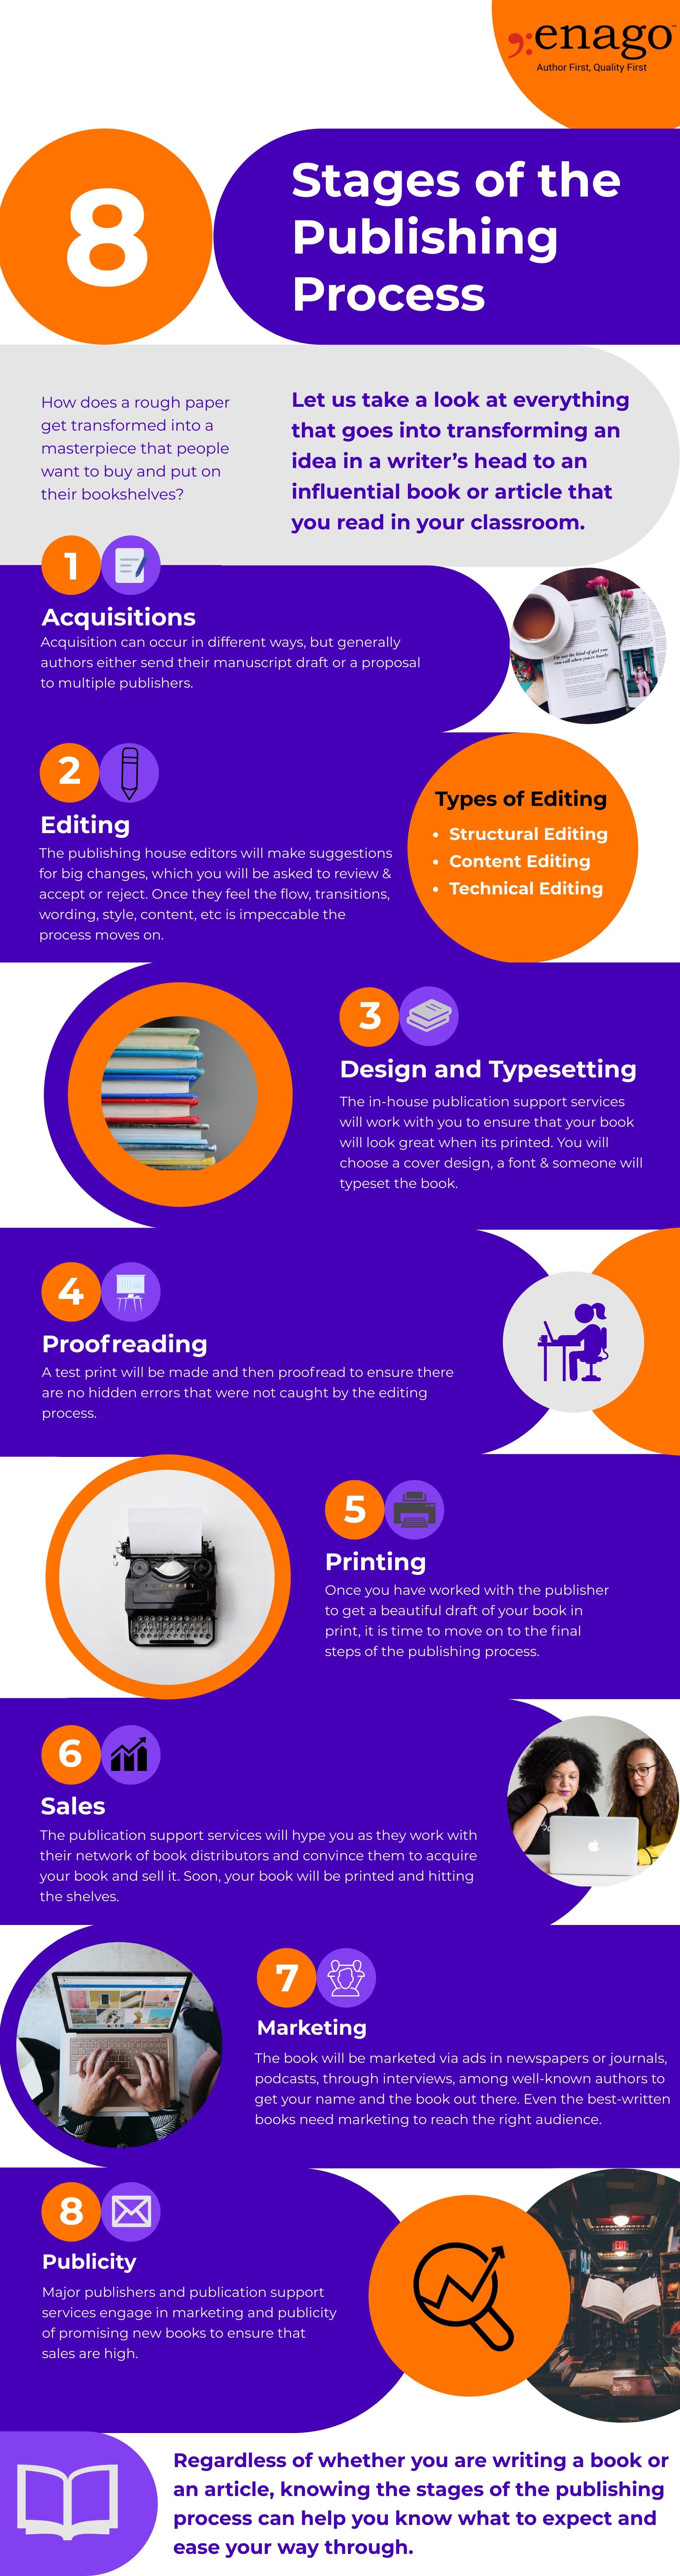 The Stages of the Publishing Process